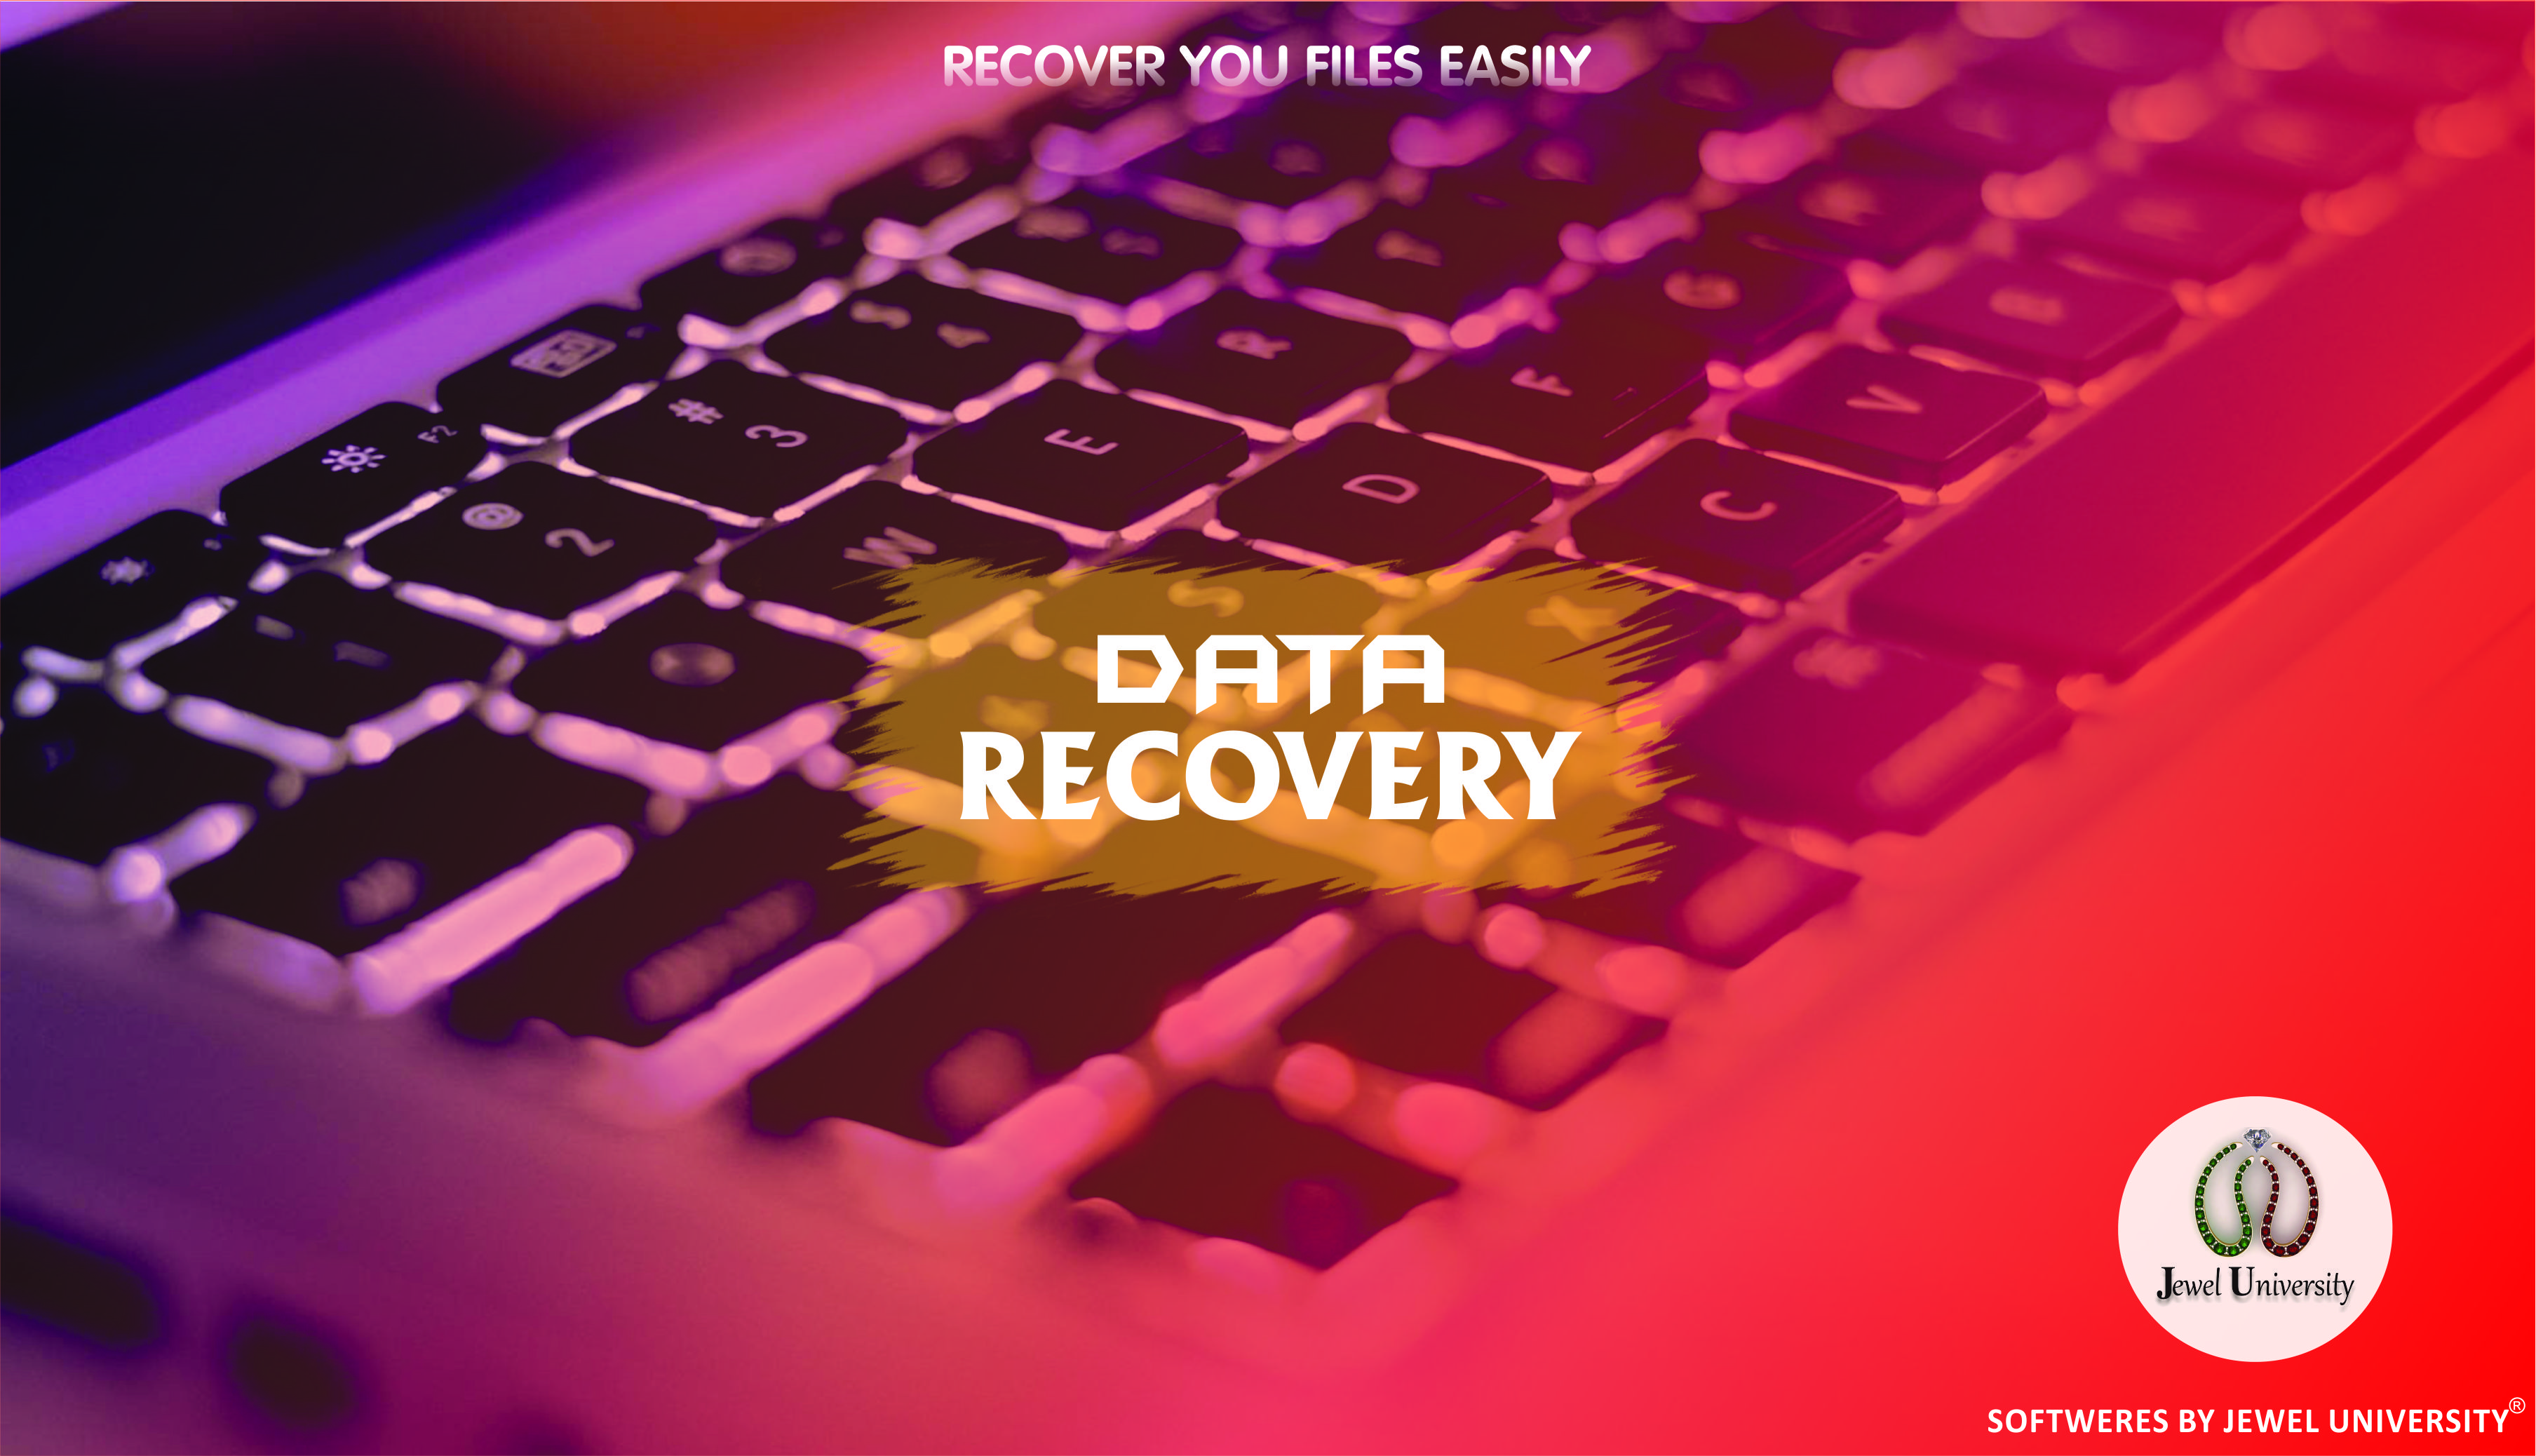 NTFScom: Data Recovery Software, File Systems, Hard